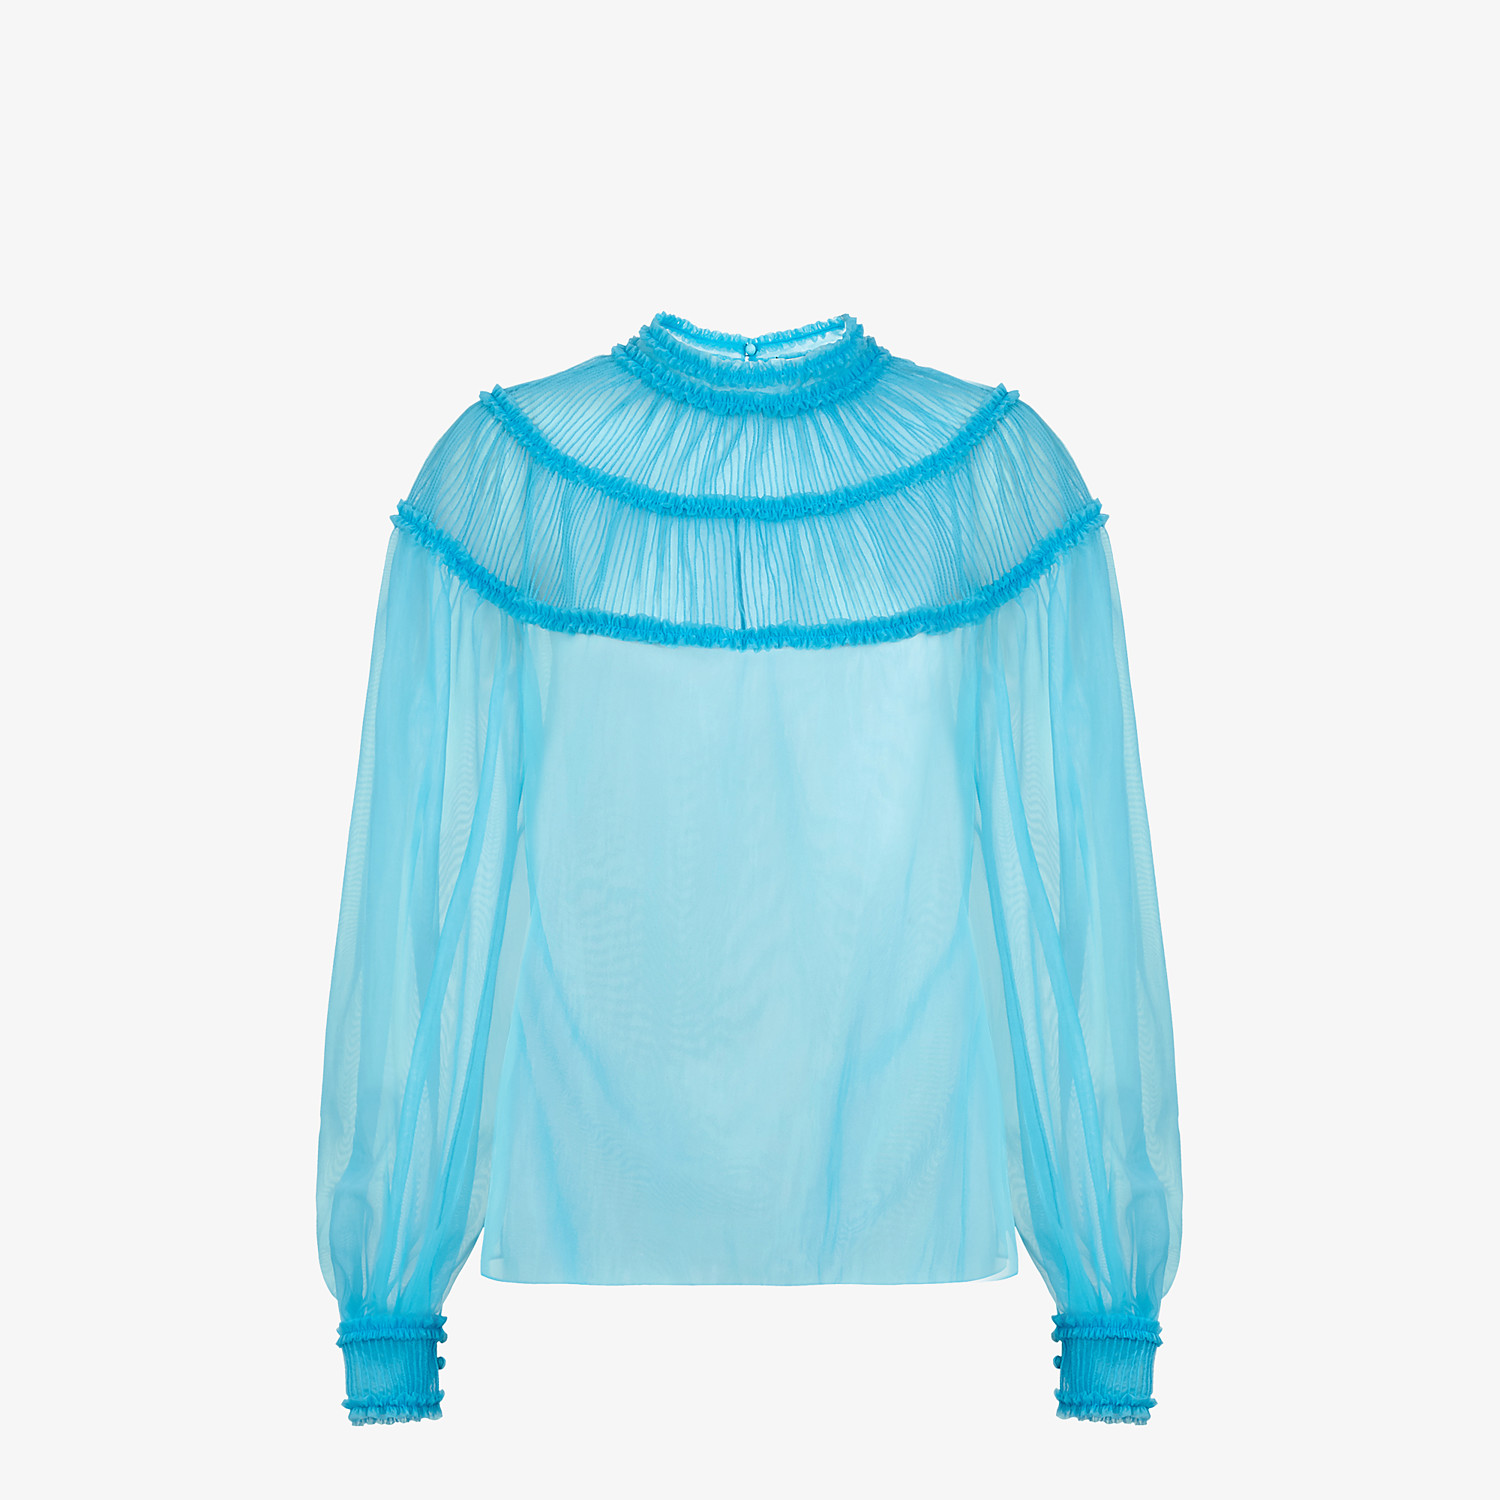 FENDI SHIRT - Light blue nylon blouse - view 1 detail